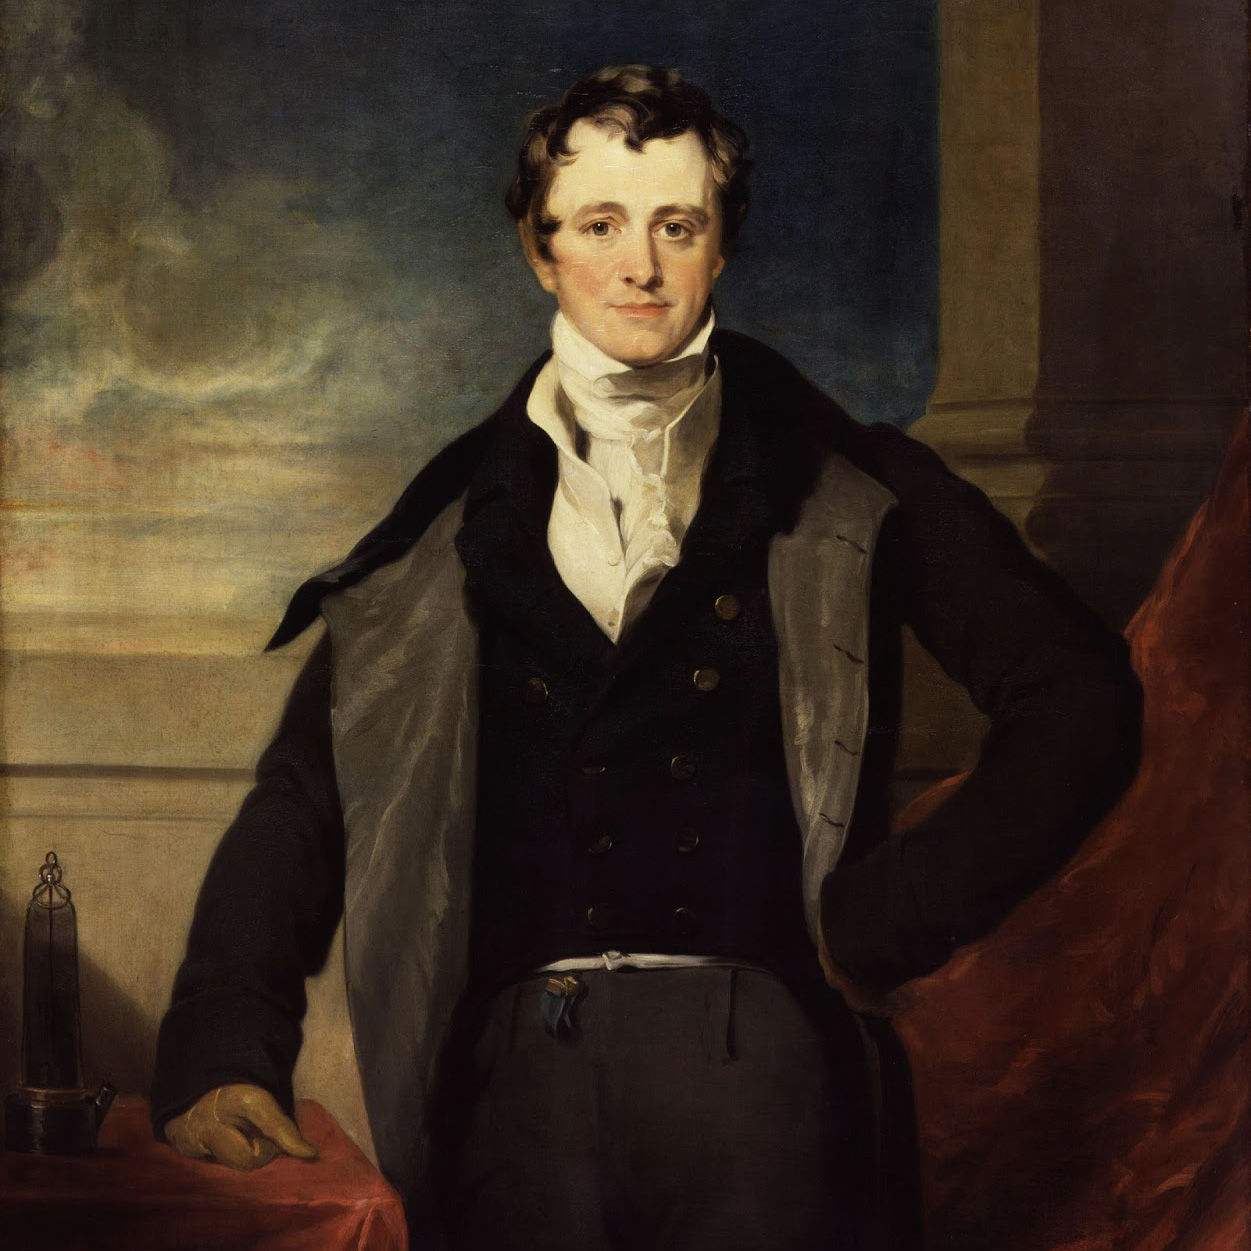 history of chemistry sir humphry davy essay Aa-o1: sir humphrey davy the name humphry davy appears frequently.